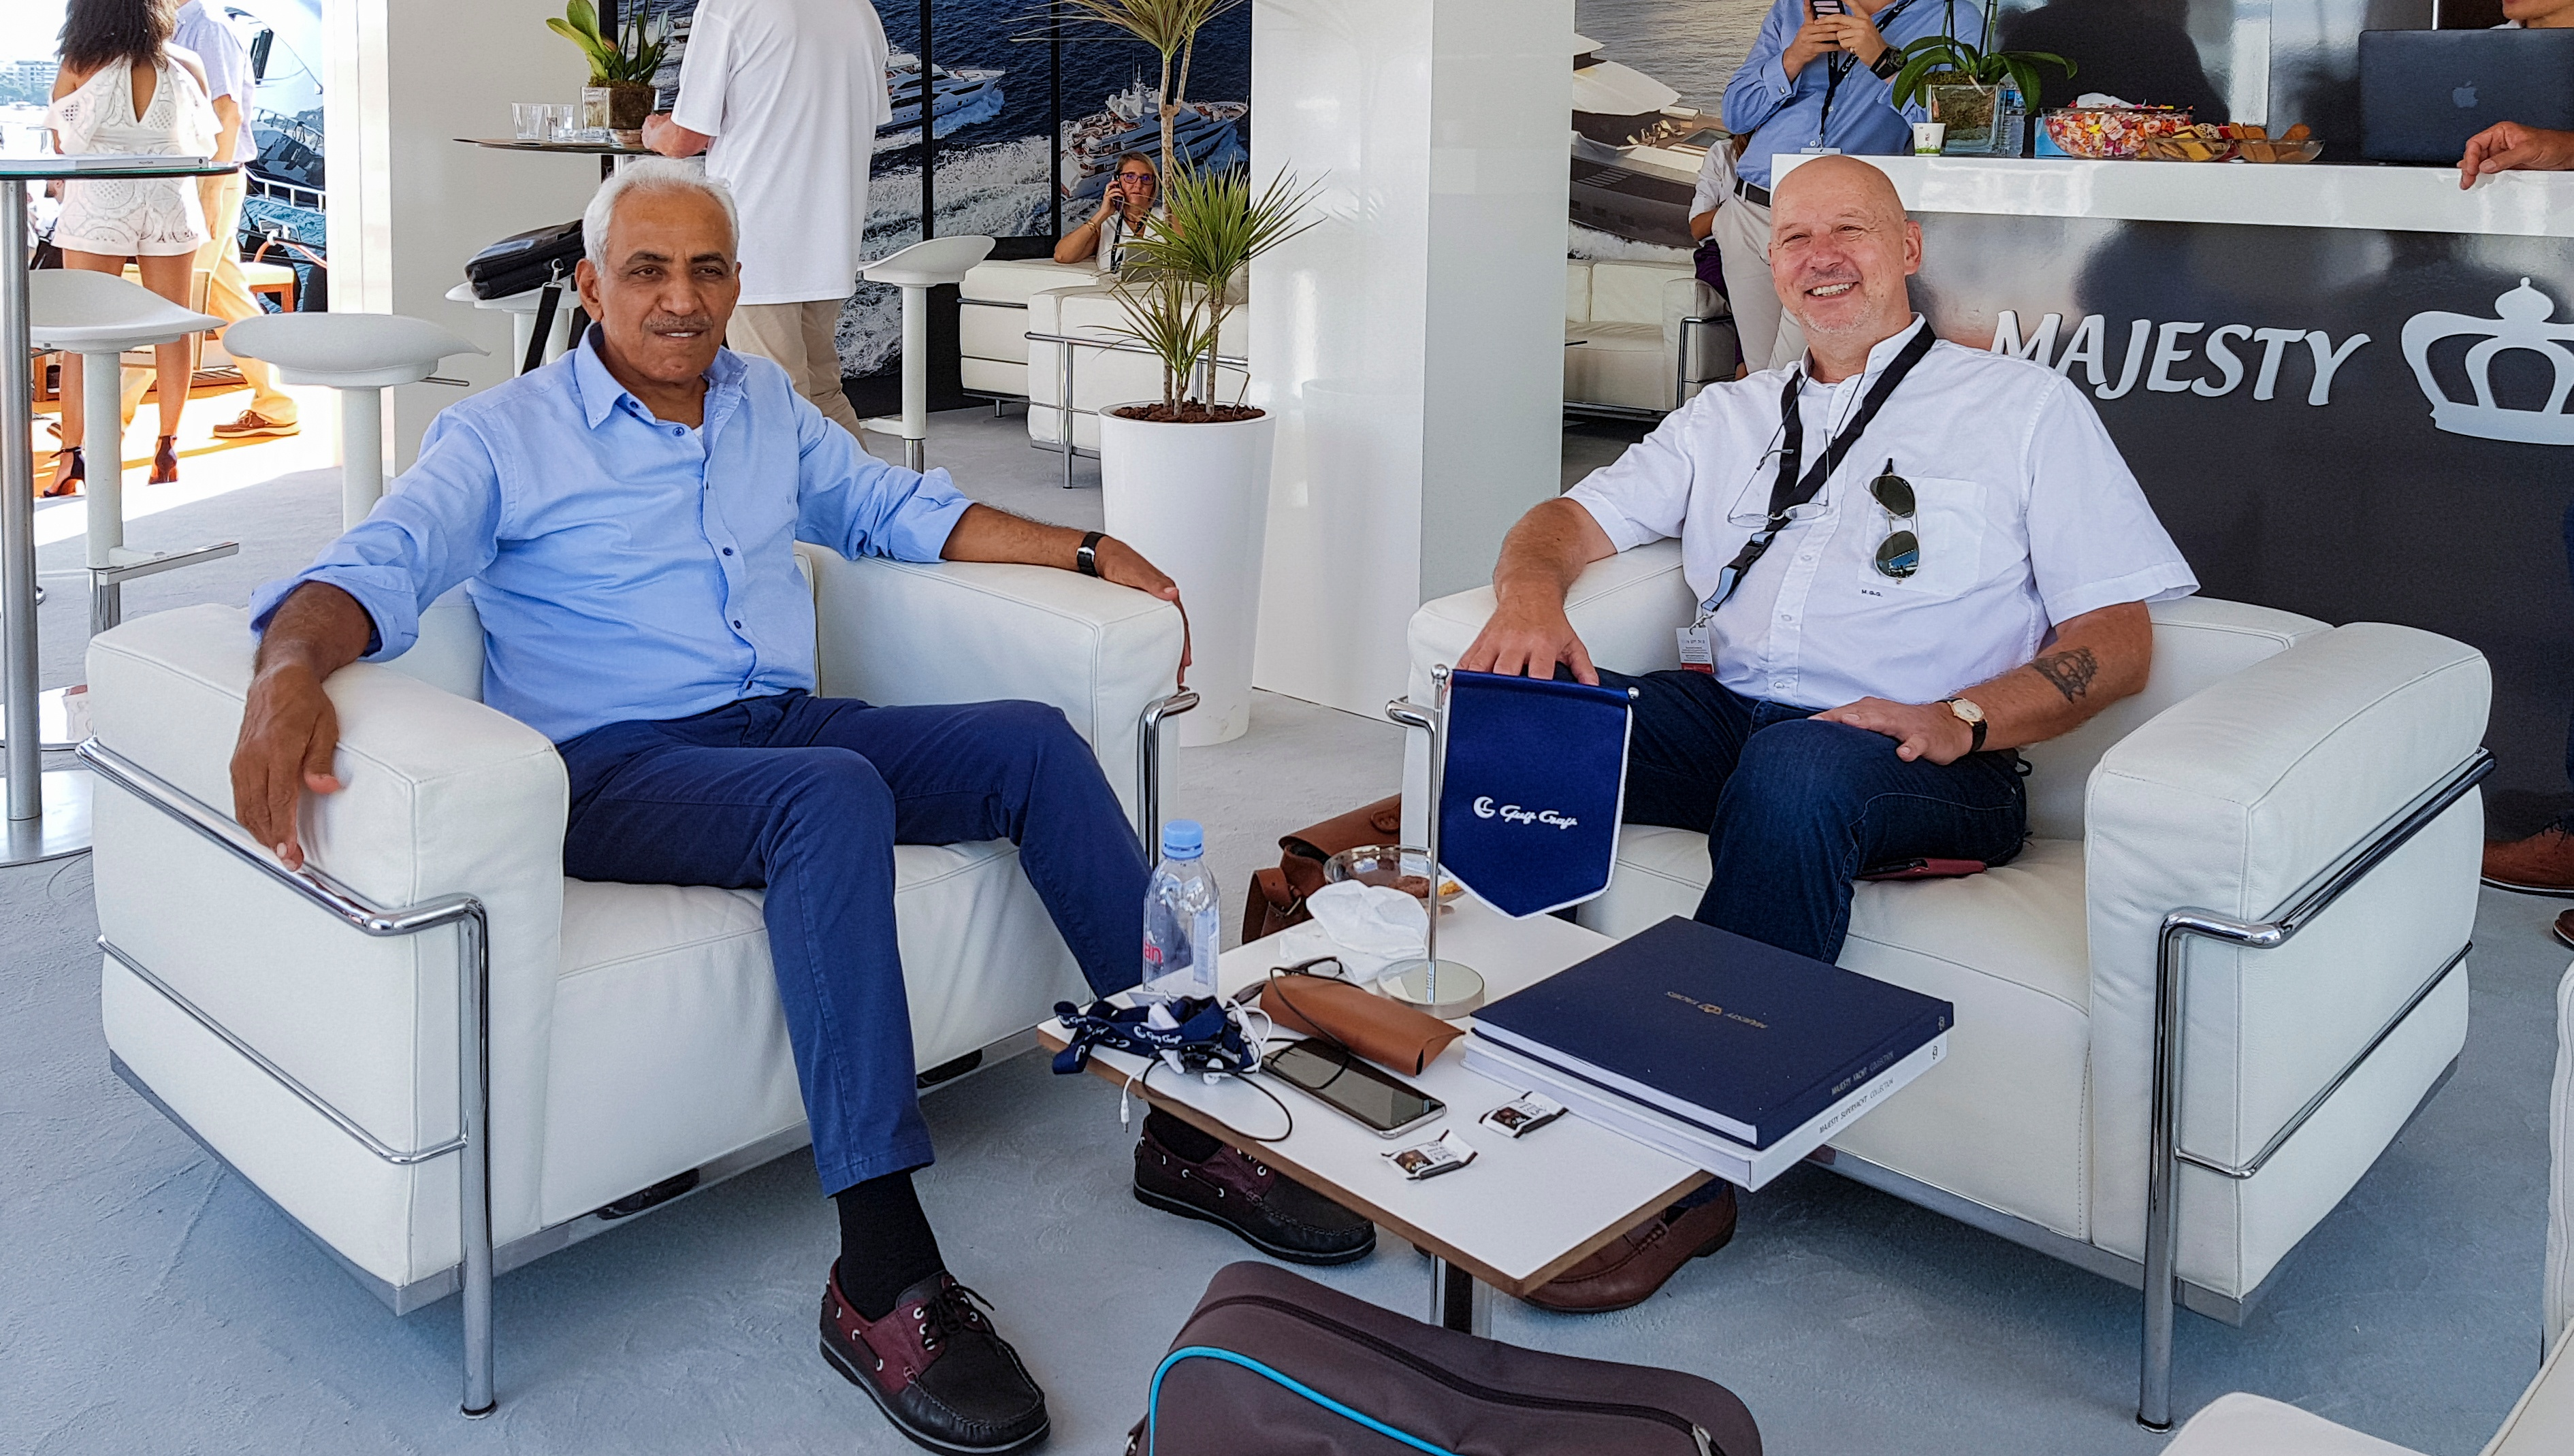 Gulf Craft at Cannes Yachting Festival 2018 Day 2 (18).jpg